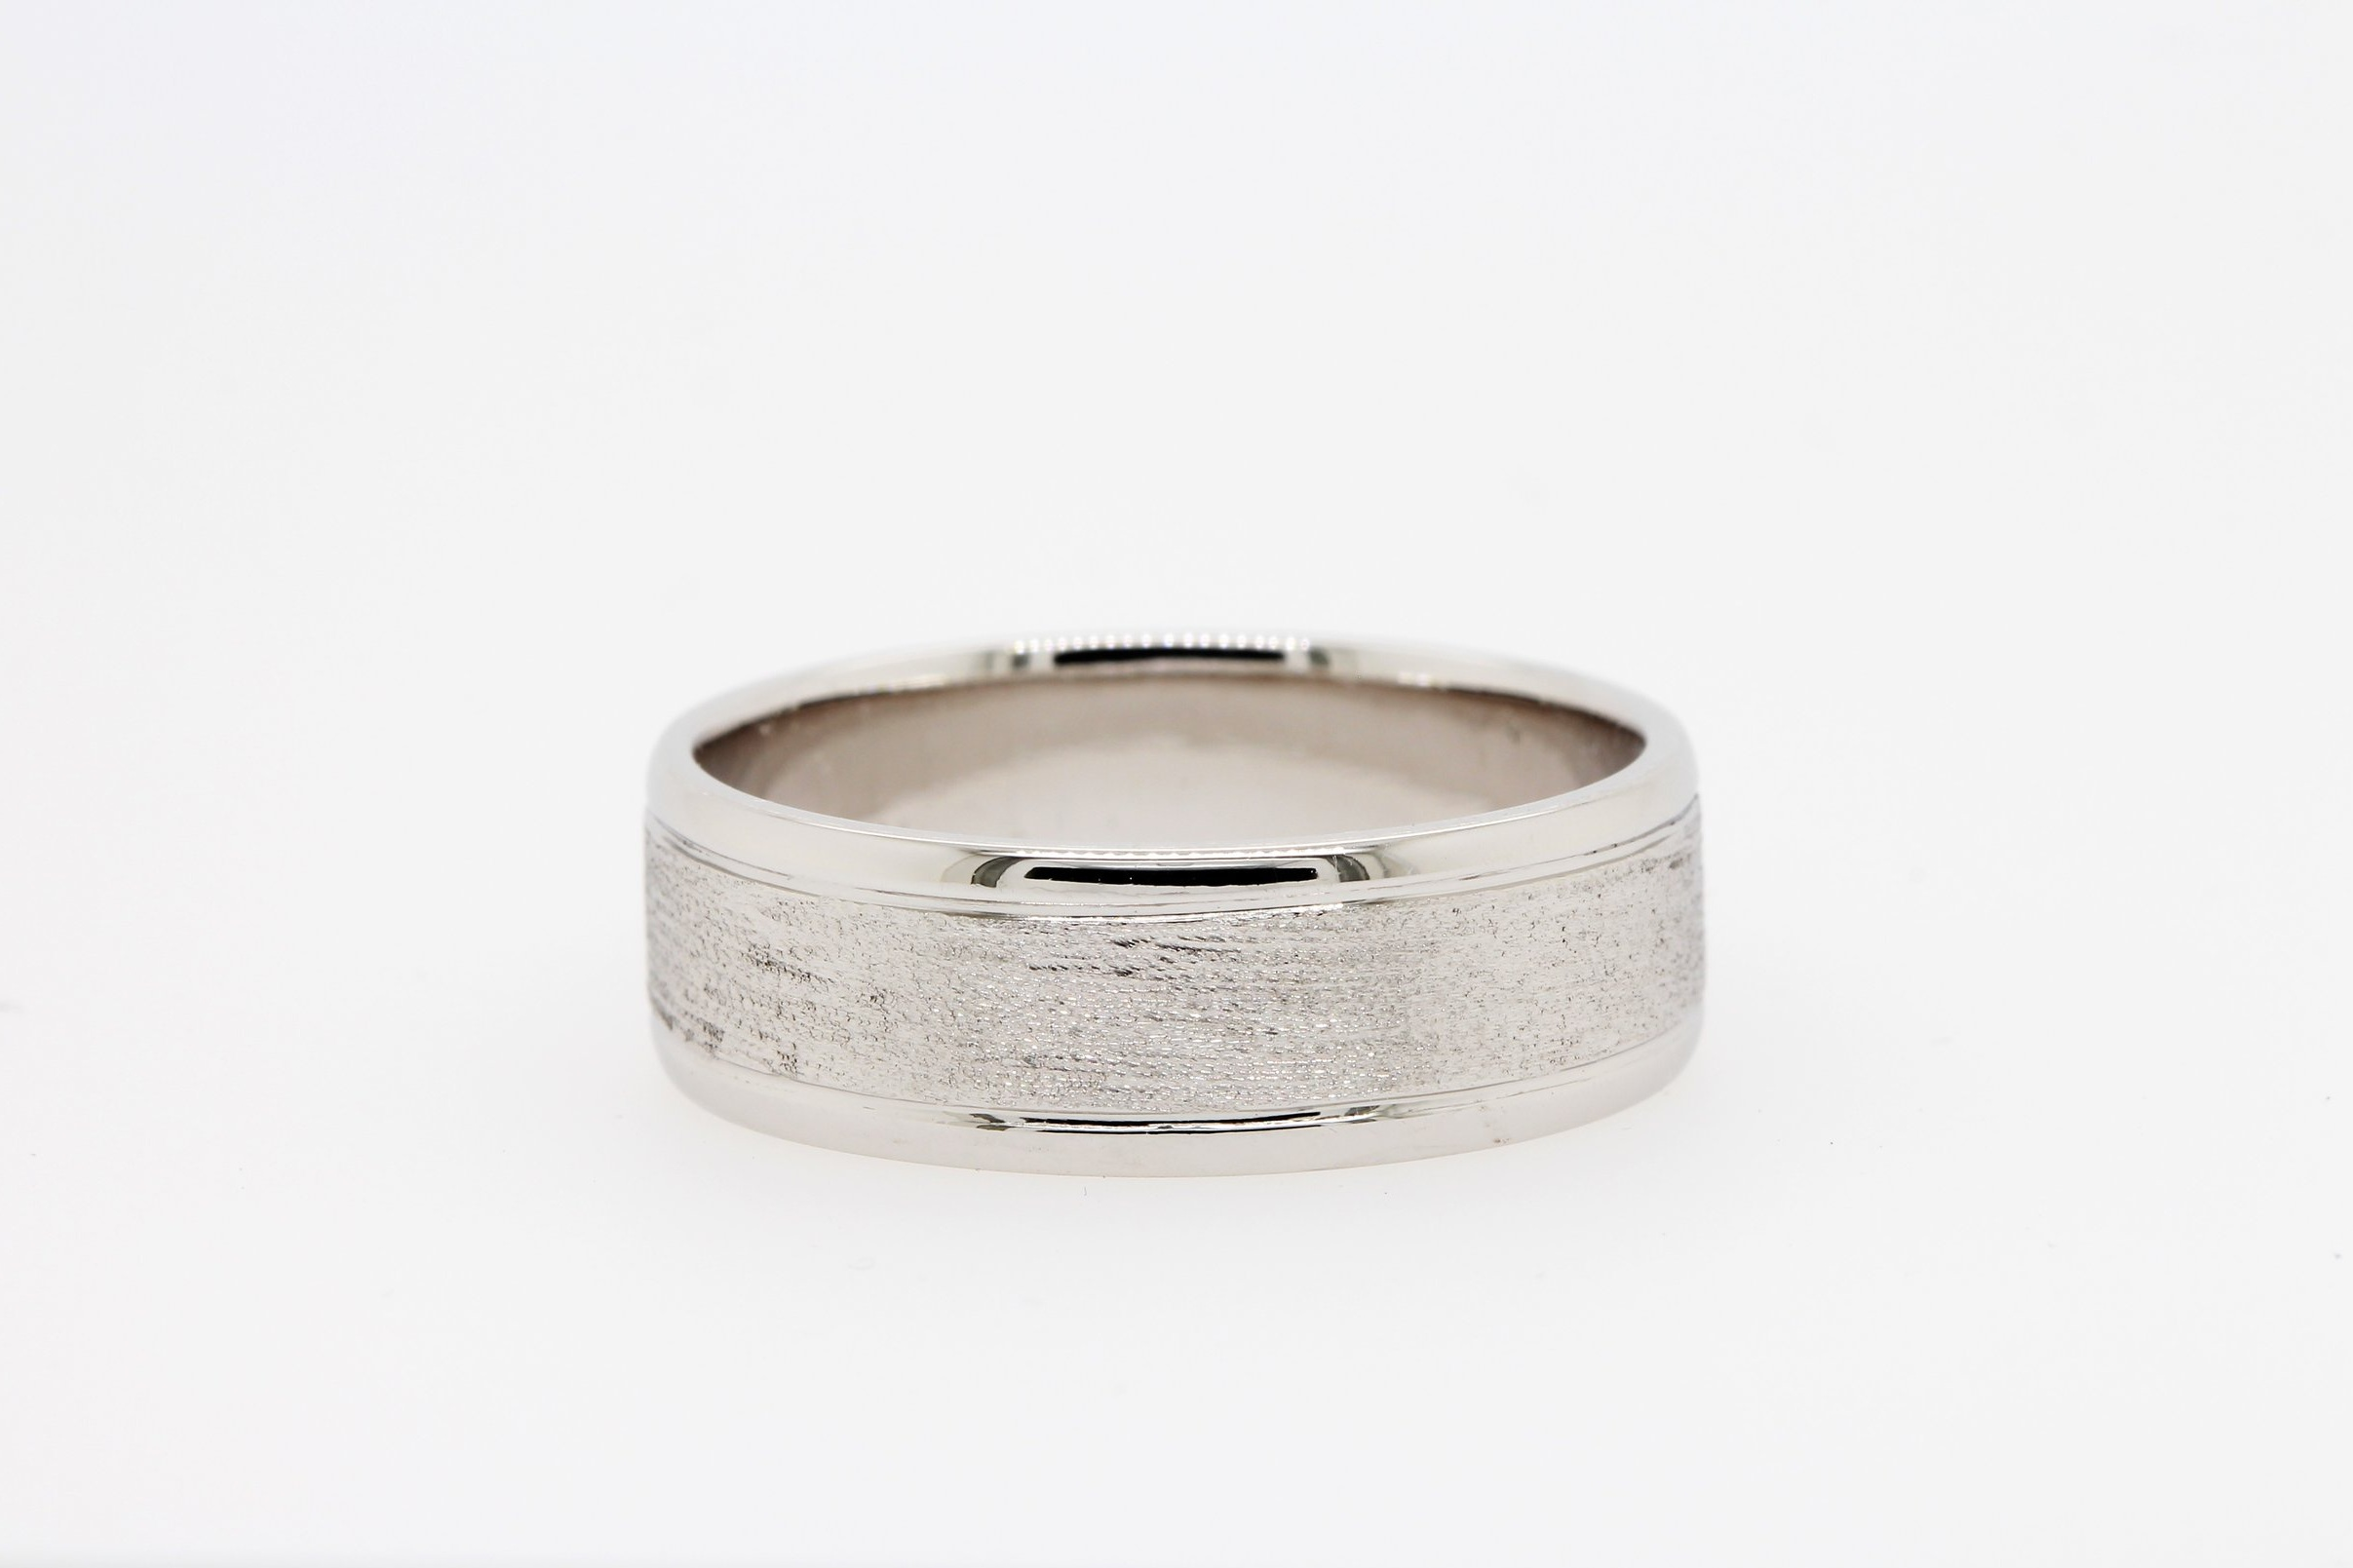 Mitch's wedding ring combines both polished and brushed textures.